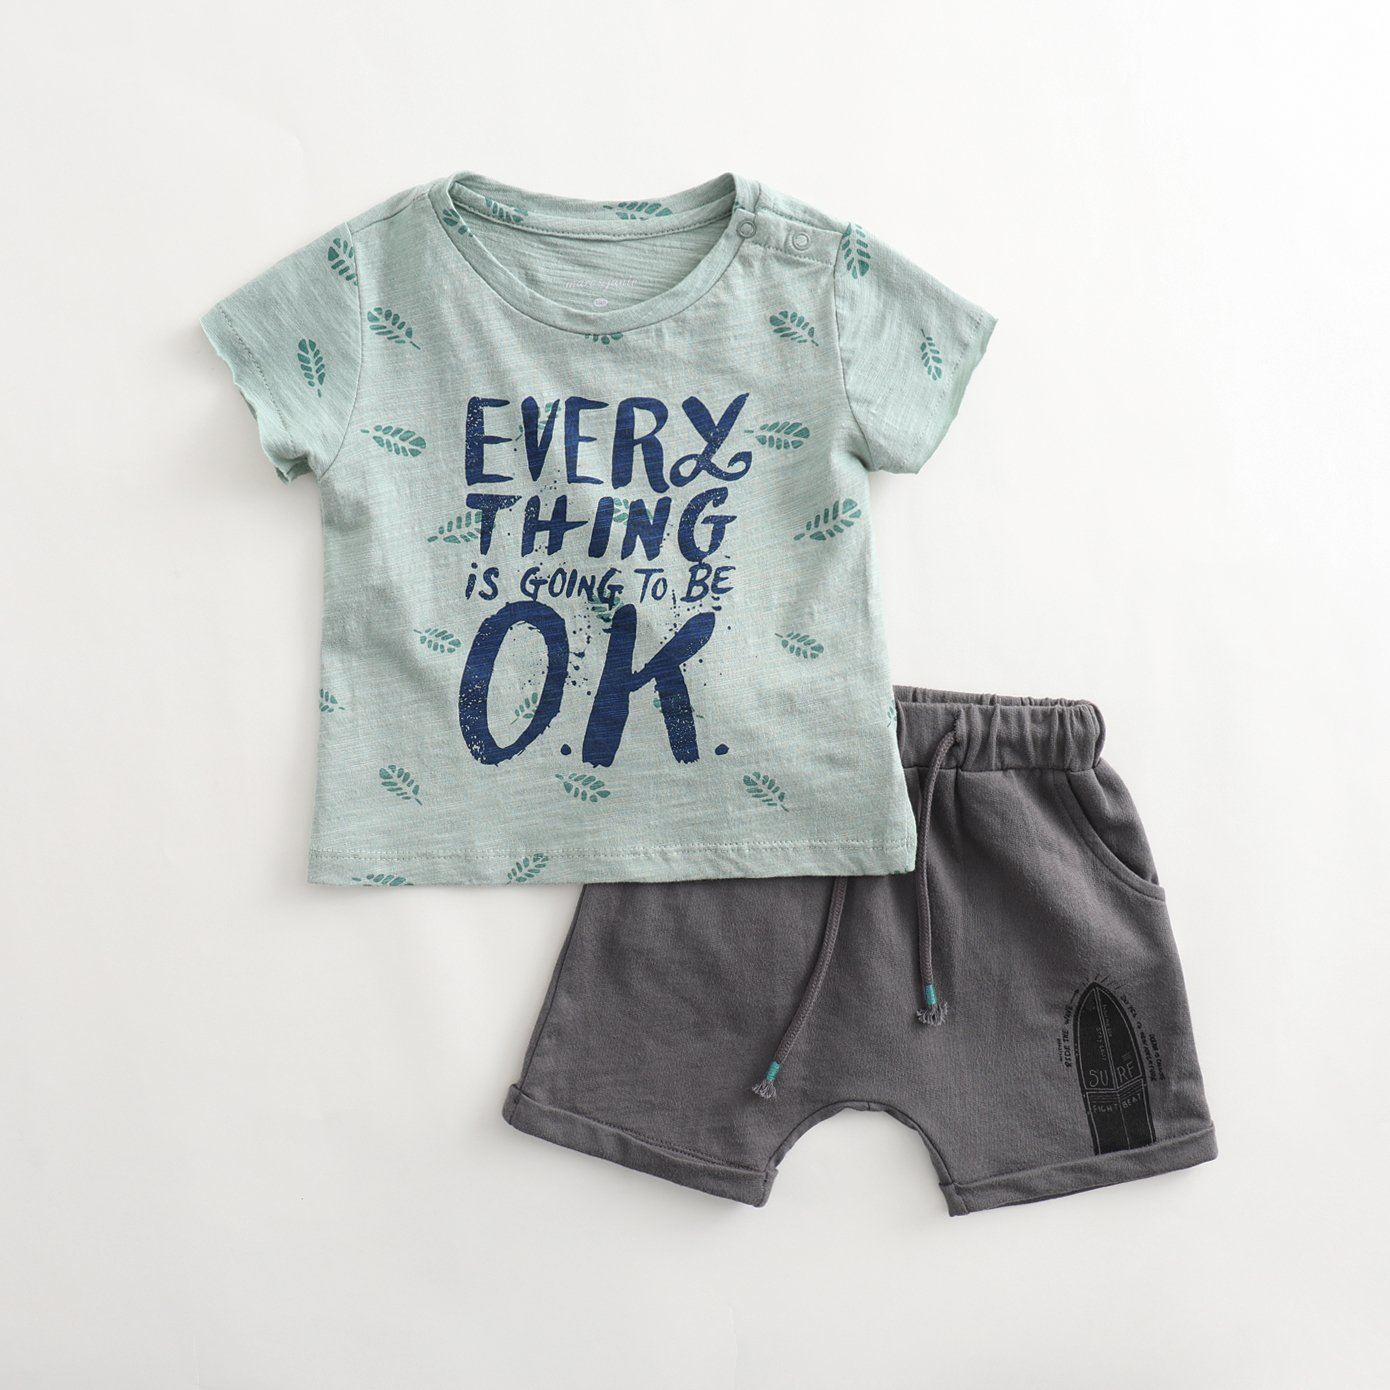 marc janie Summer Boys Round Collar Greenery Cute Pattern Short Sleeve T-Shirts and Shorts Infant Baby Tees Set